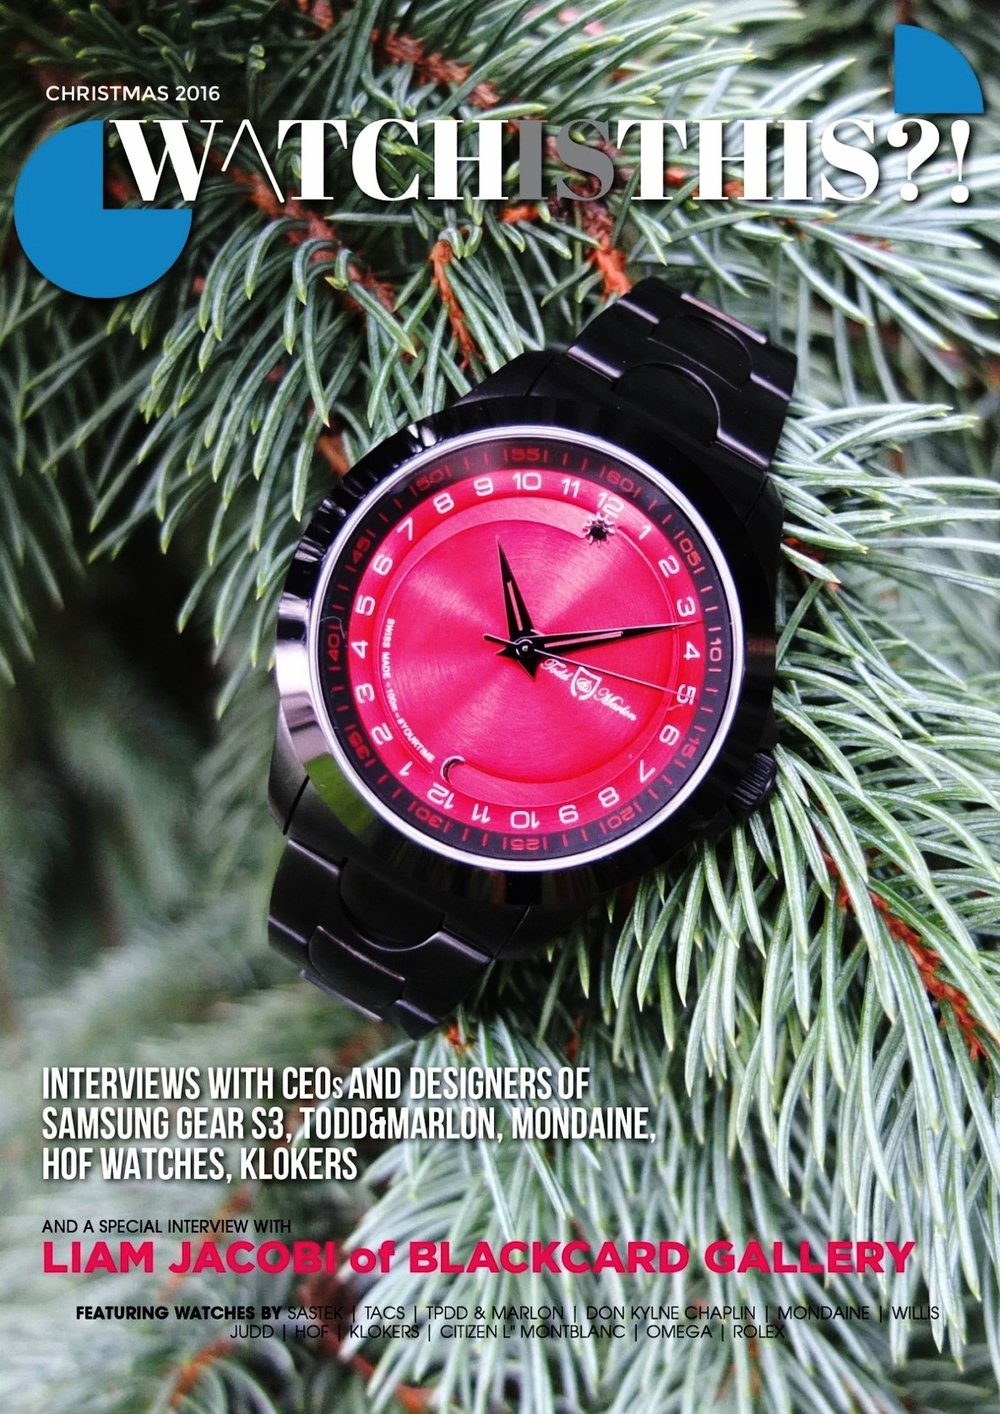 WatchIsThis Dec 2016 - cover